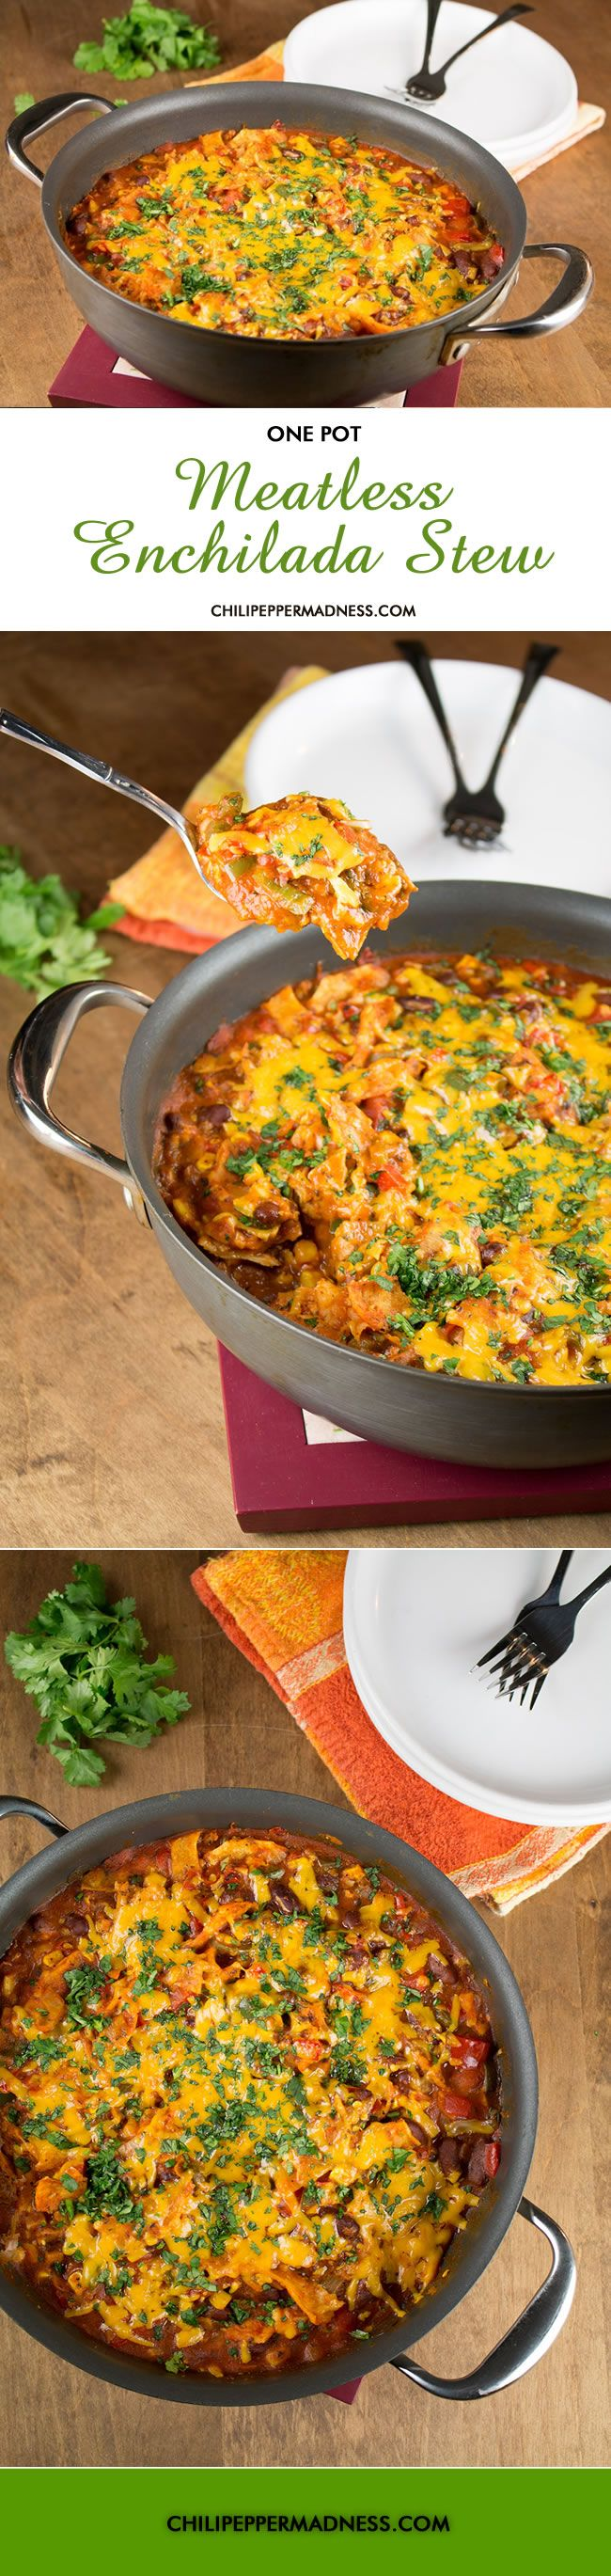 One Pot Meatless Enchilada Stew